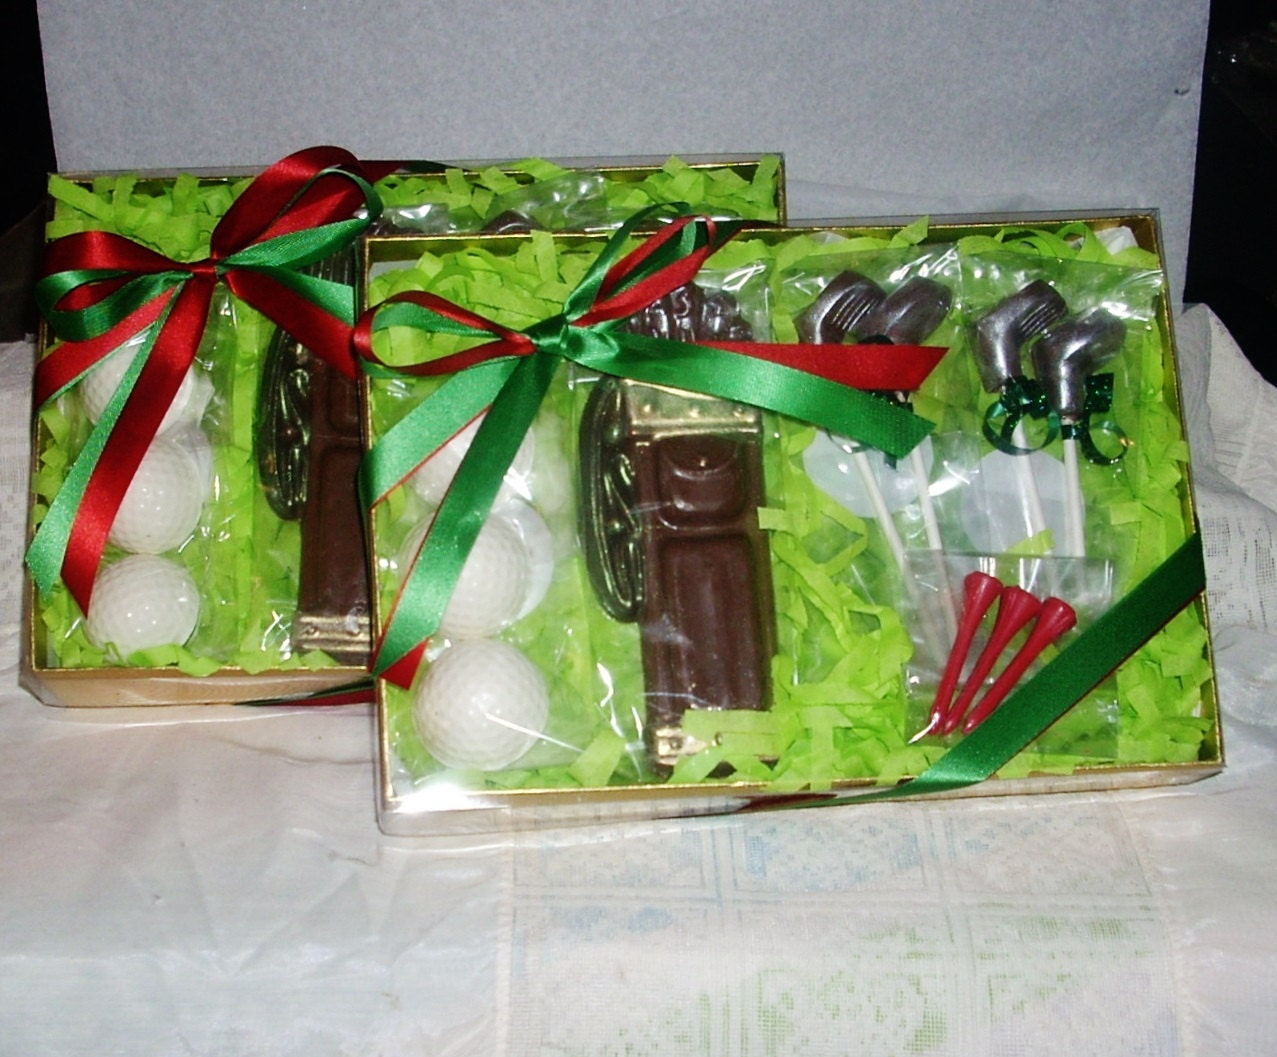 Chocolate Golf Gift Set golf bag balls clubs and tee's